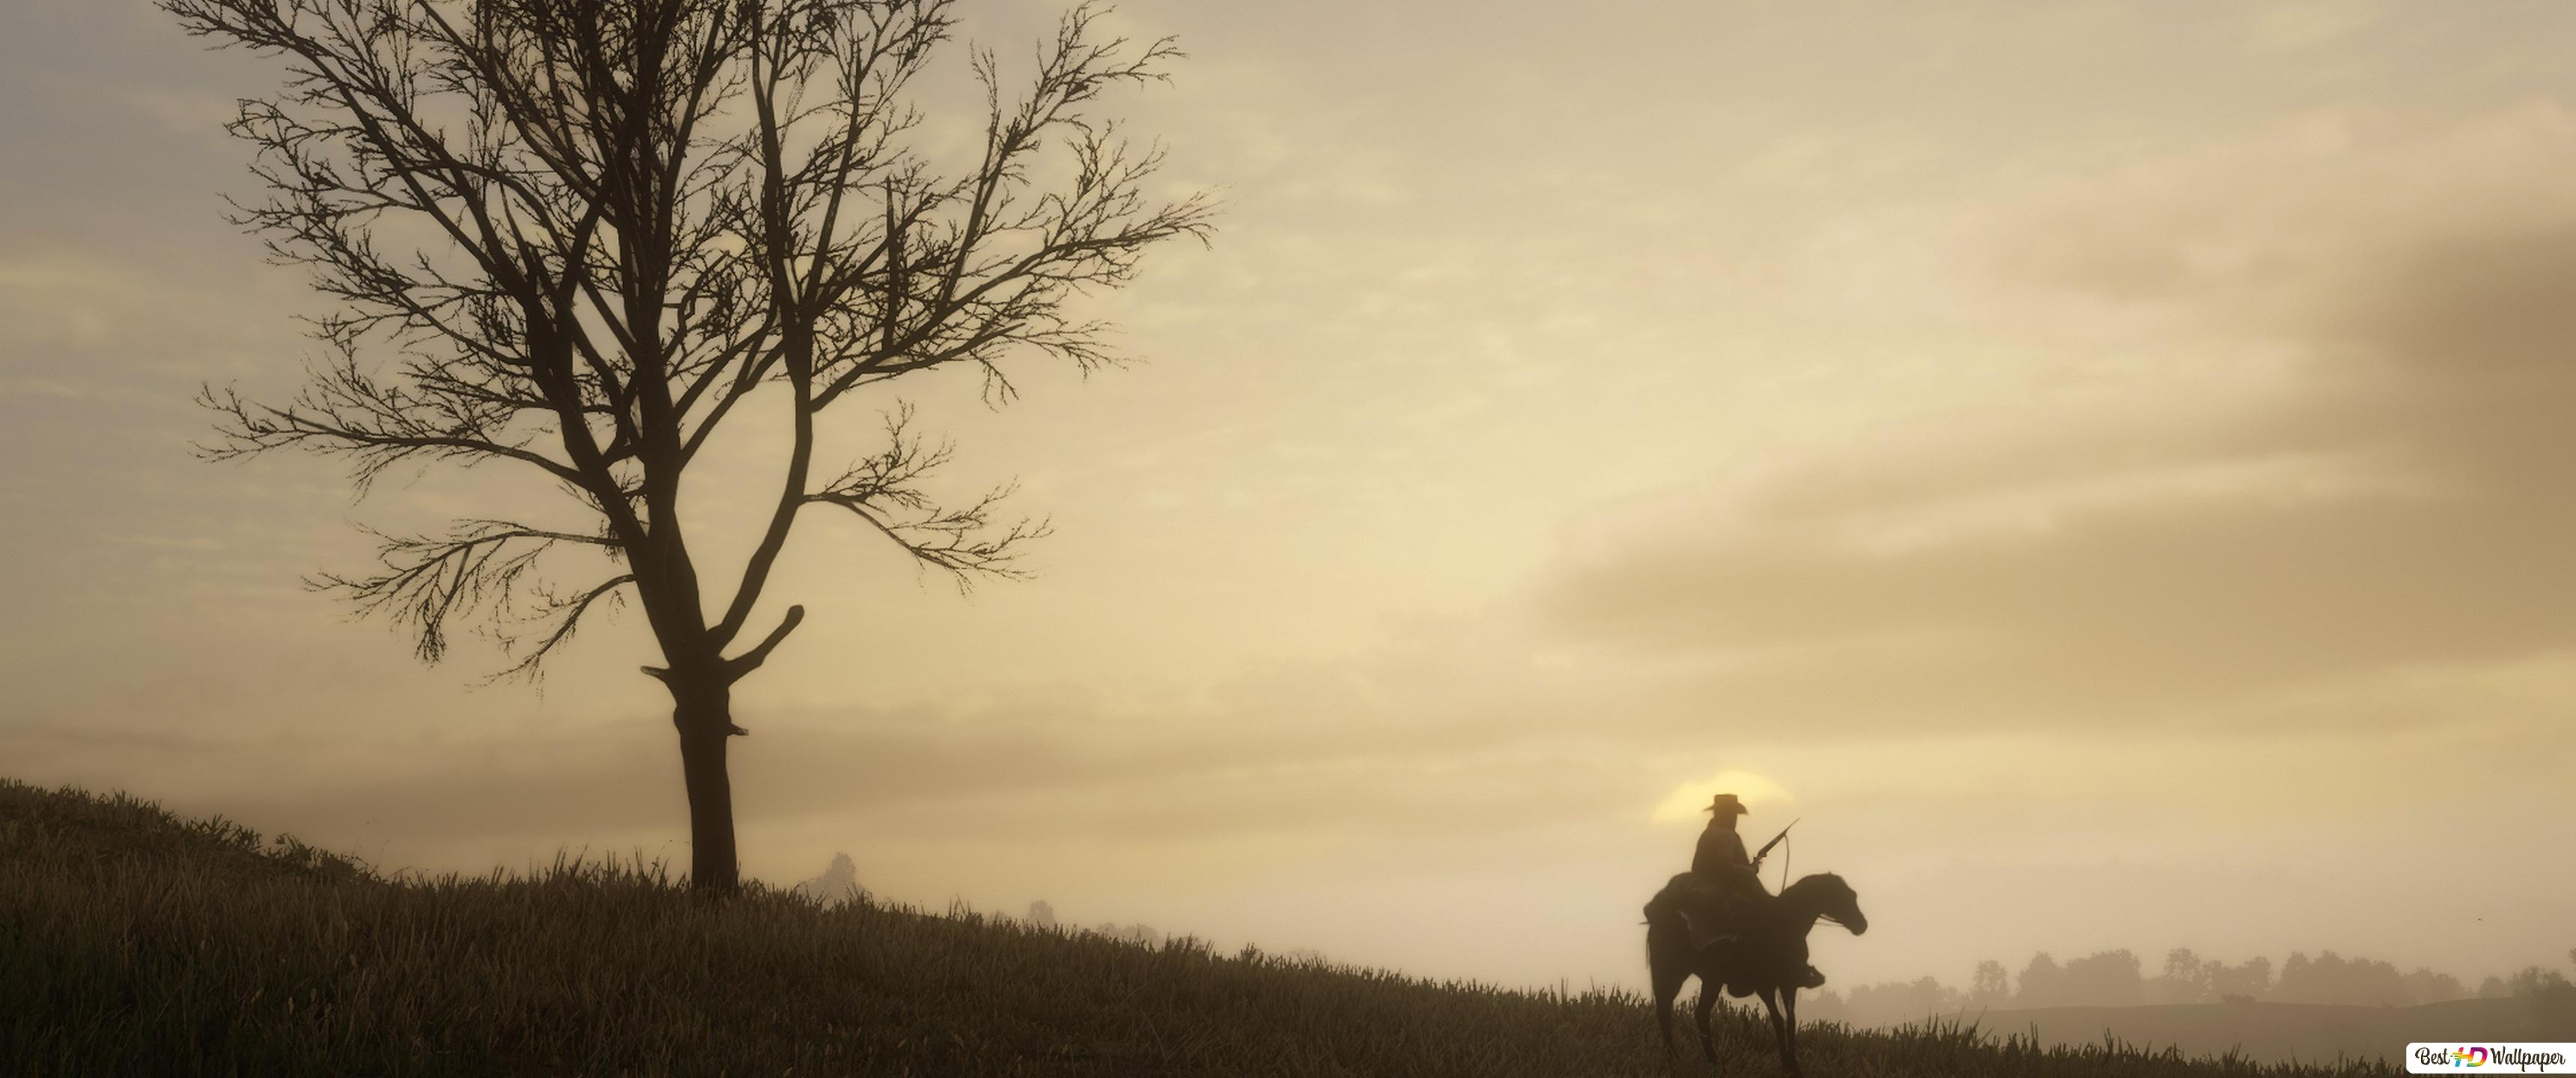 Red Dead Redemption Ii Sunset Hd Wallpaper Download